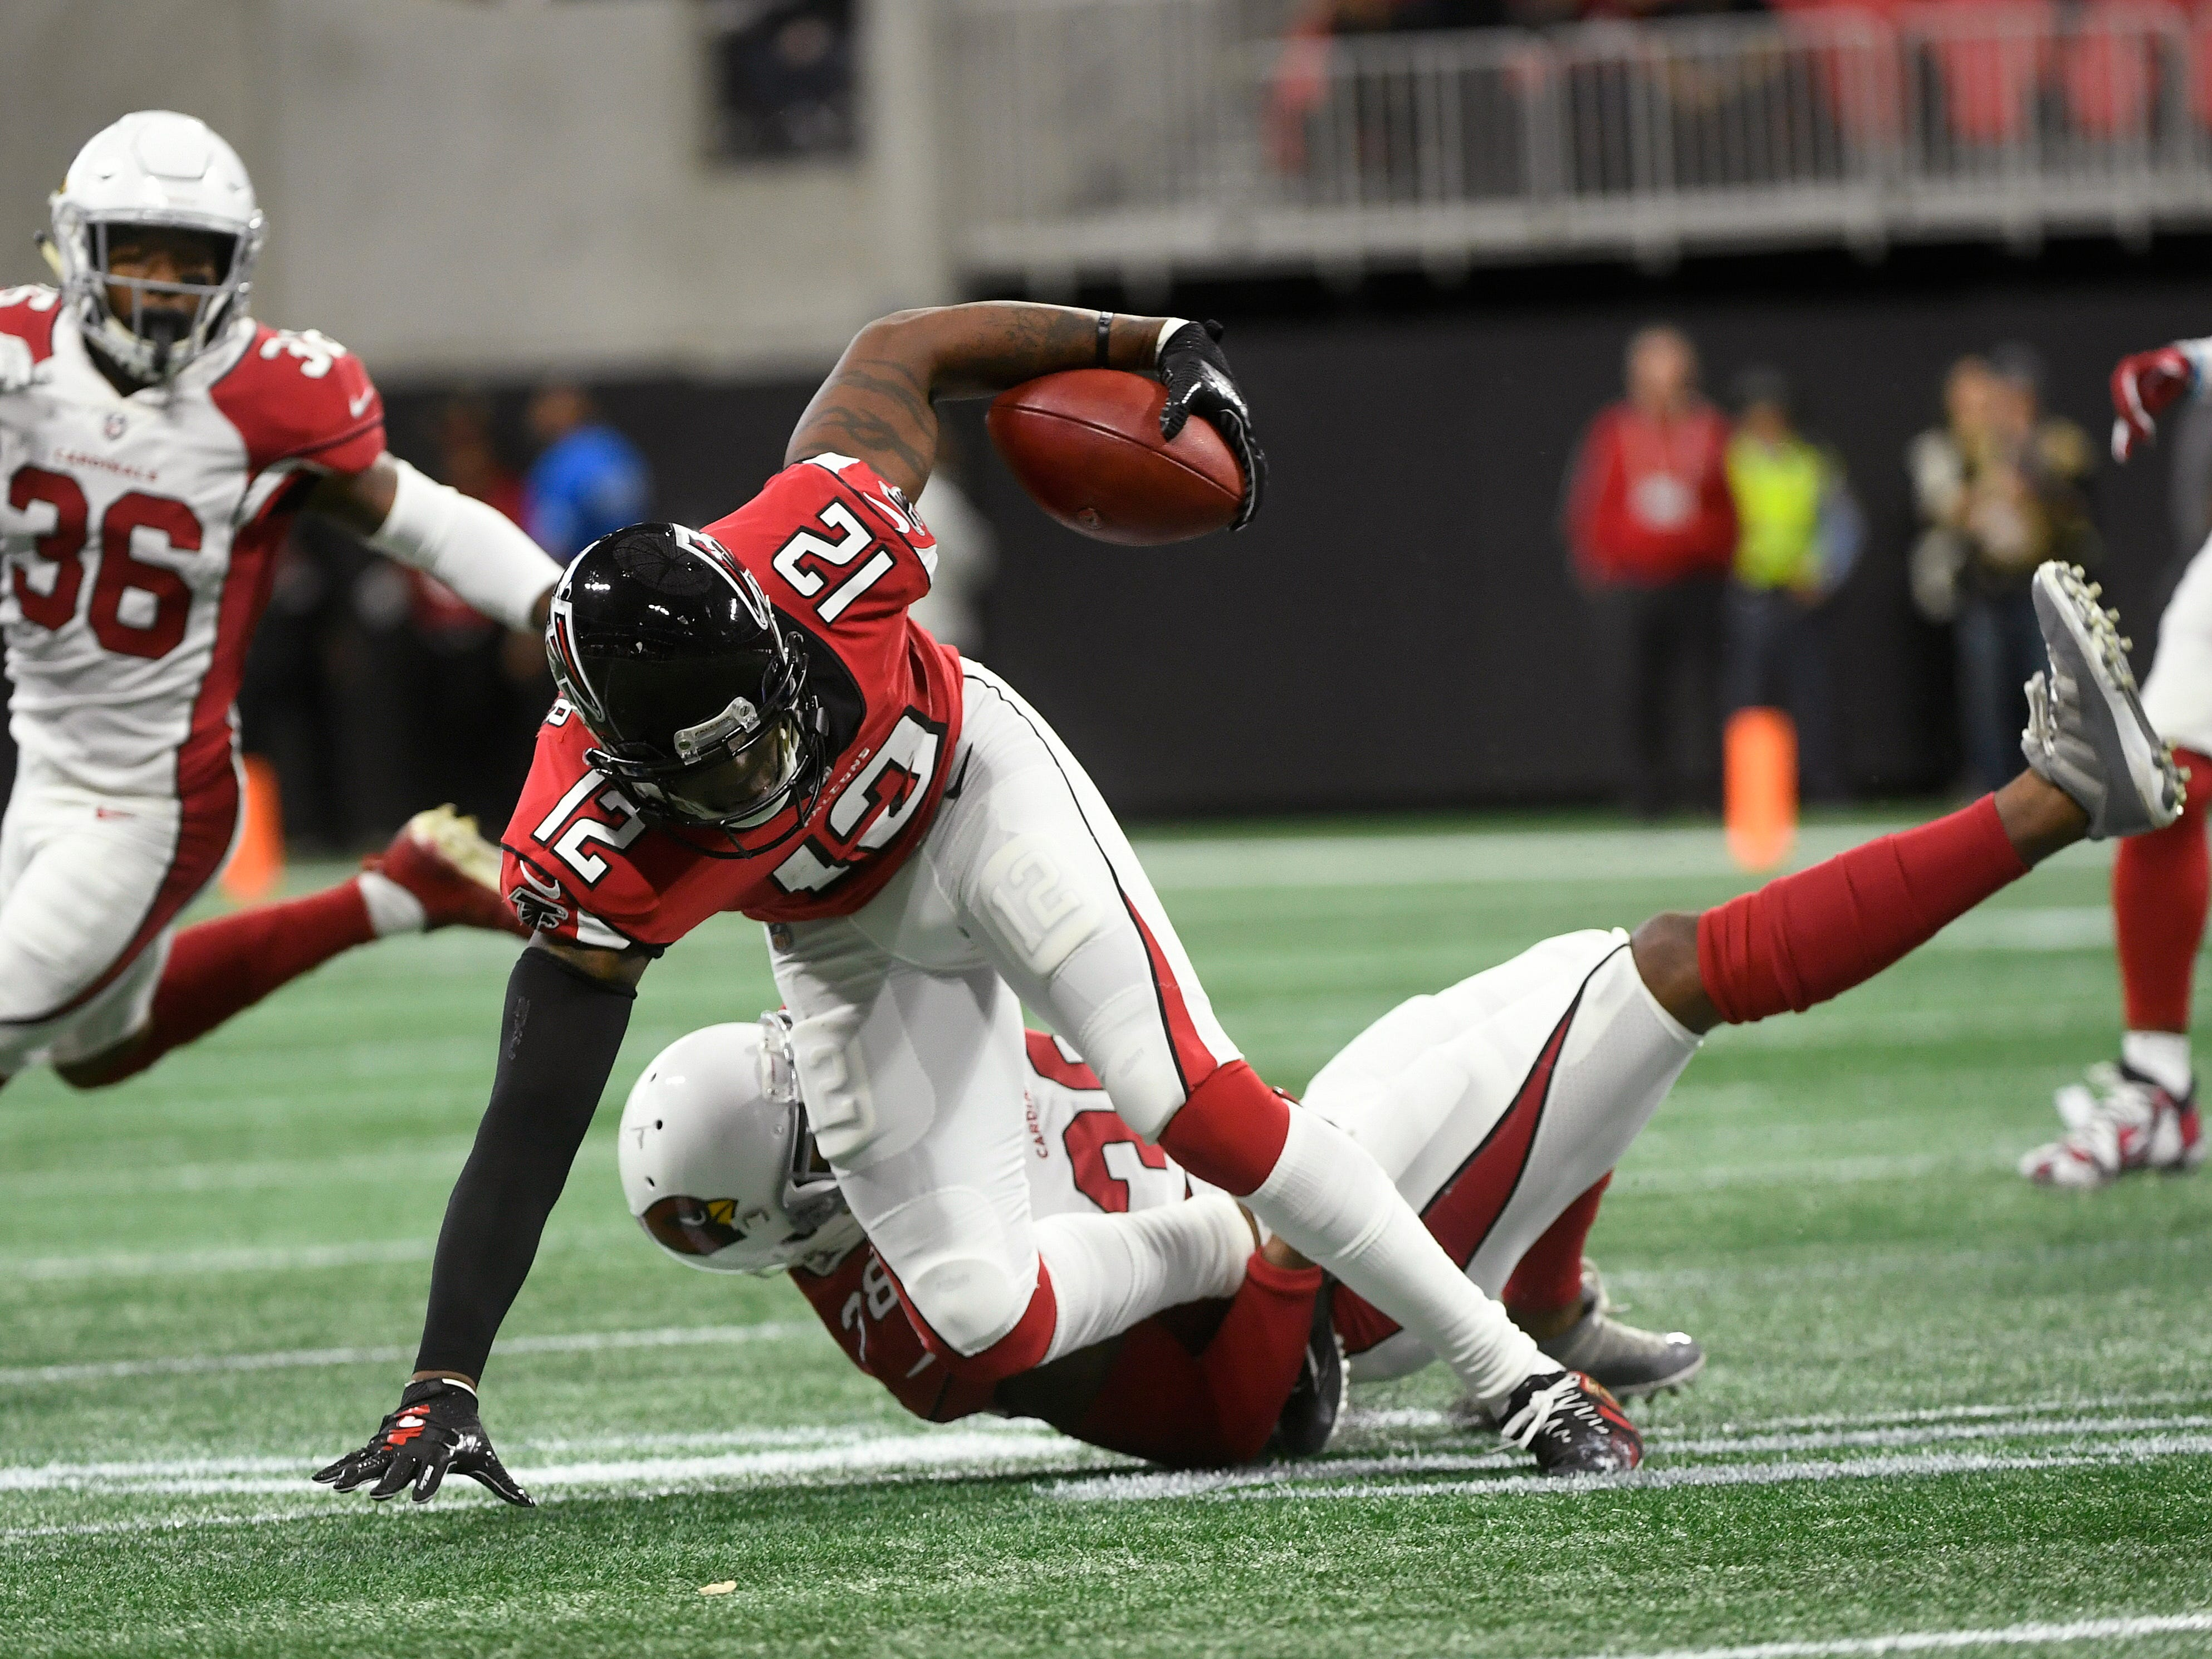 Arizona Cardinals defensive back David Amerson (38) tackles Atlanta Falcons cornerback Desmond Trufant (21) during the first half of an NFL football game, Sunday, Dec. 16, 2018, in Atlanta. (AP Photo/John Amis)